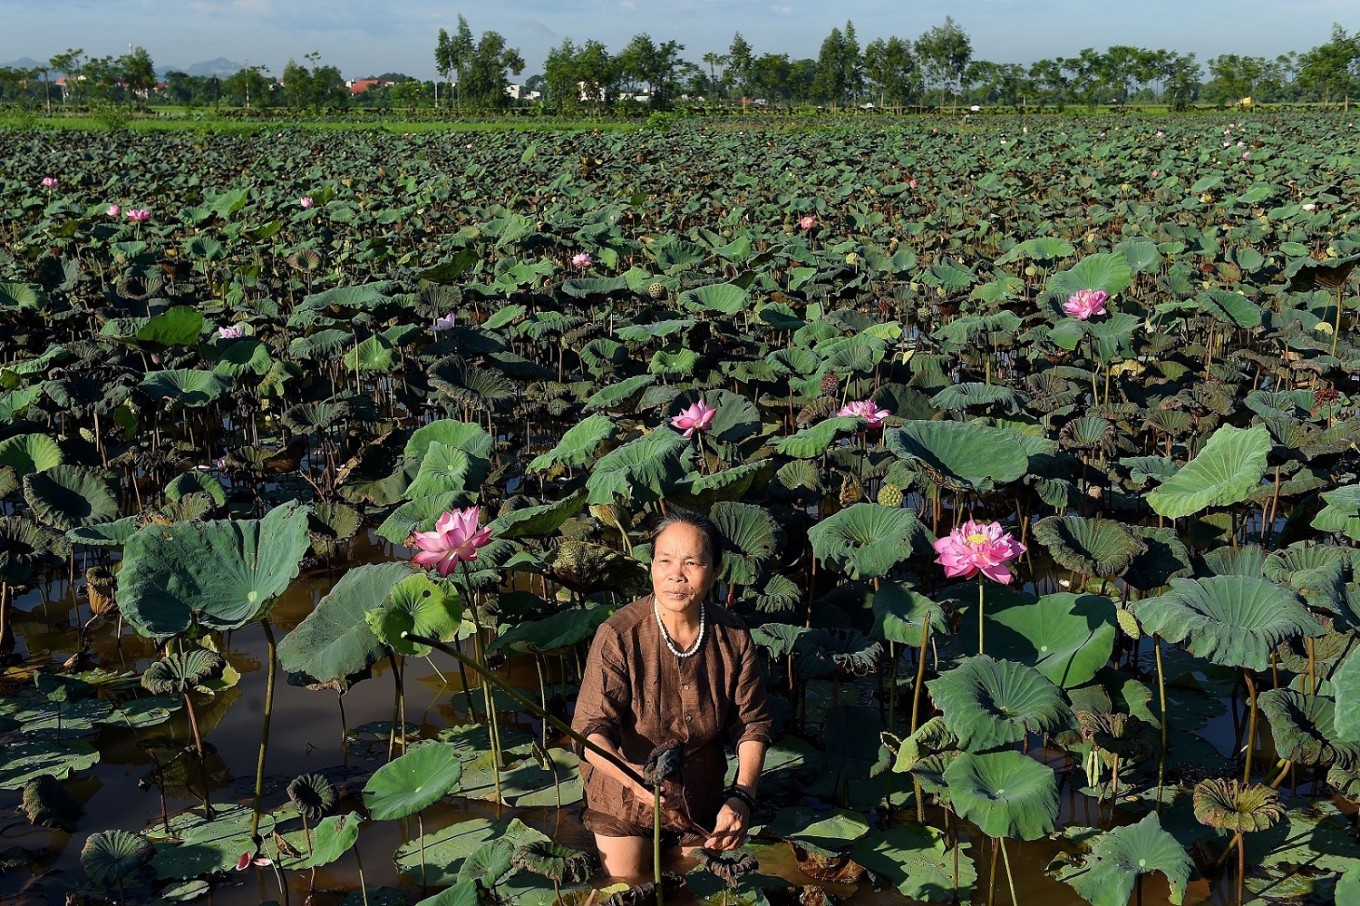 Fabric of success: How 'lotus silk' is weaving its way into Vietnam